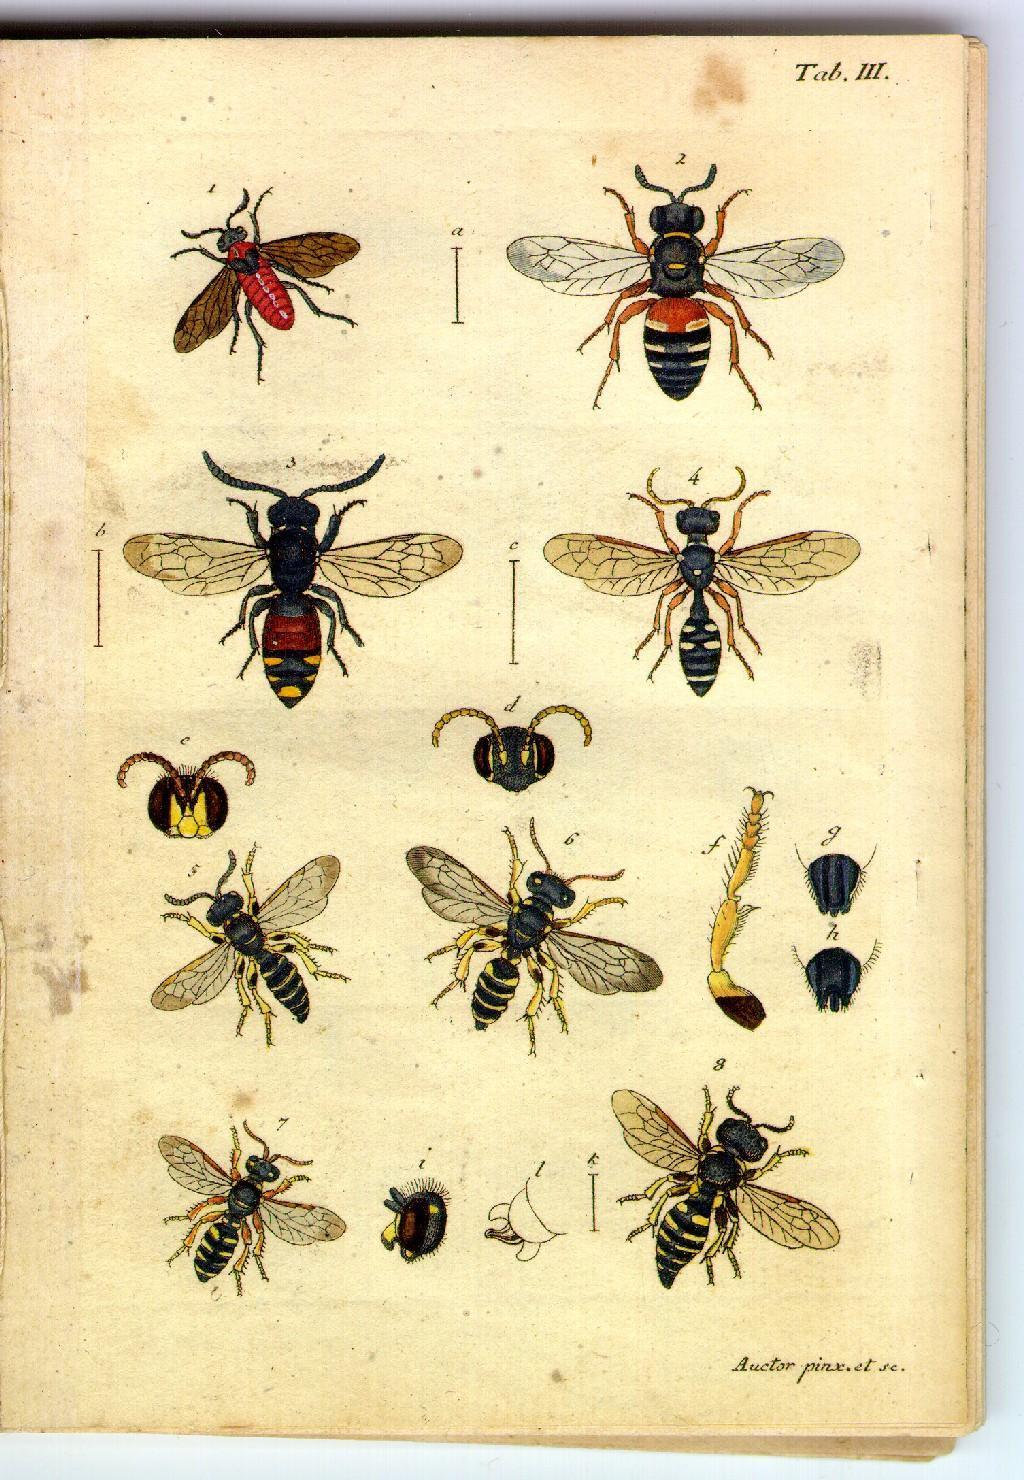 Illustrations of flies and bees,  Image number:sturm-tab-iii